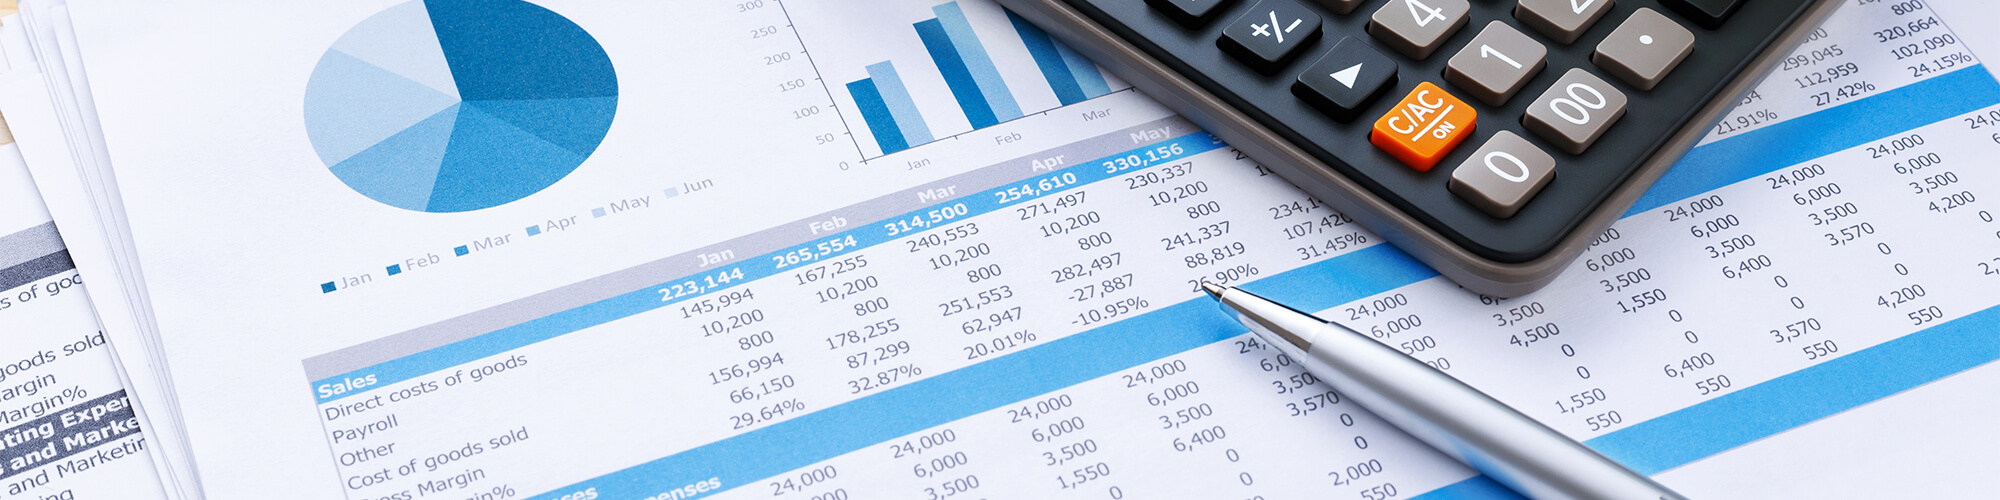 Small Business Accounting Services in Irvington, NJ